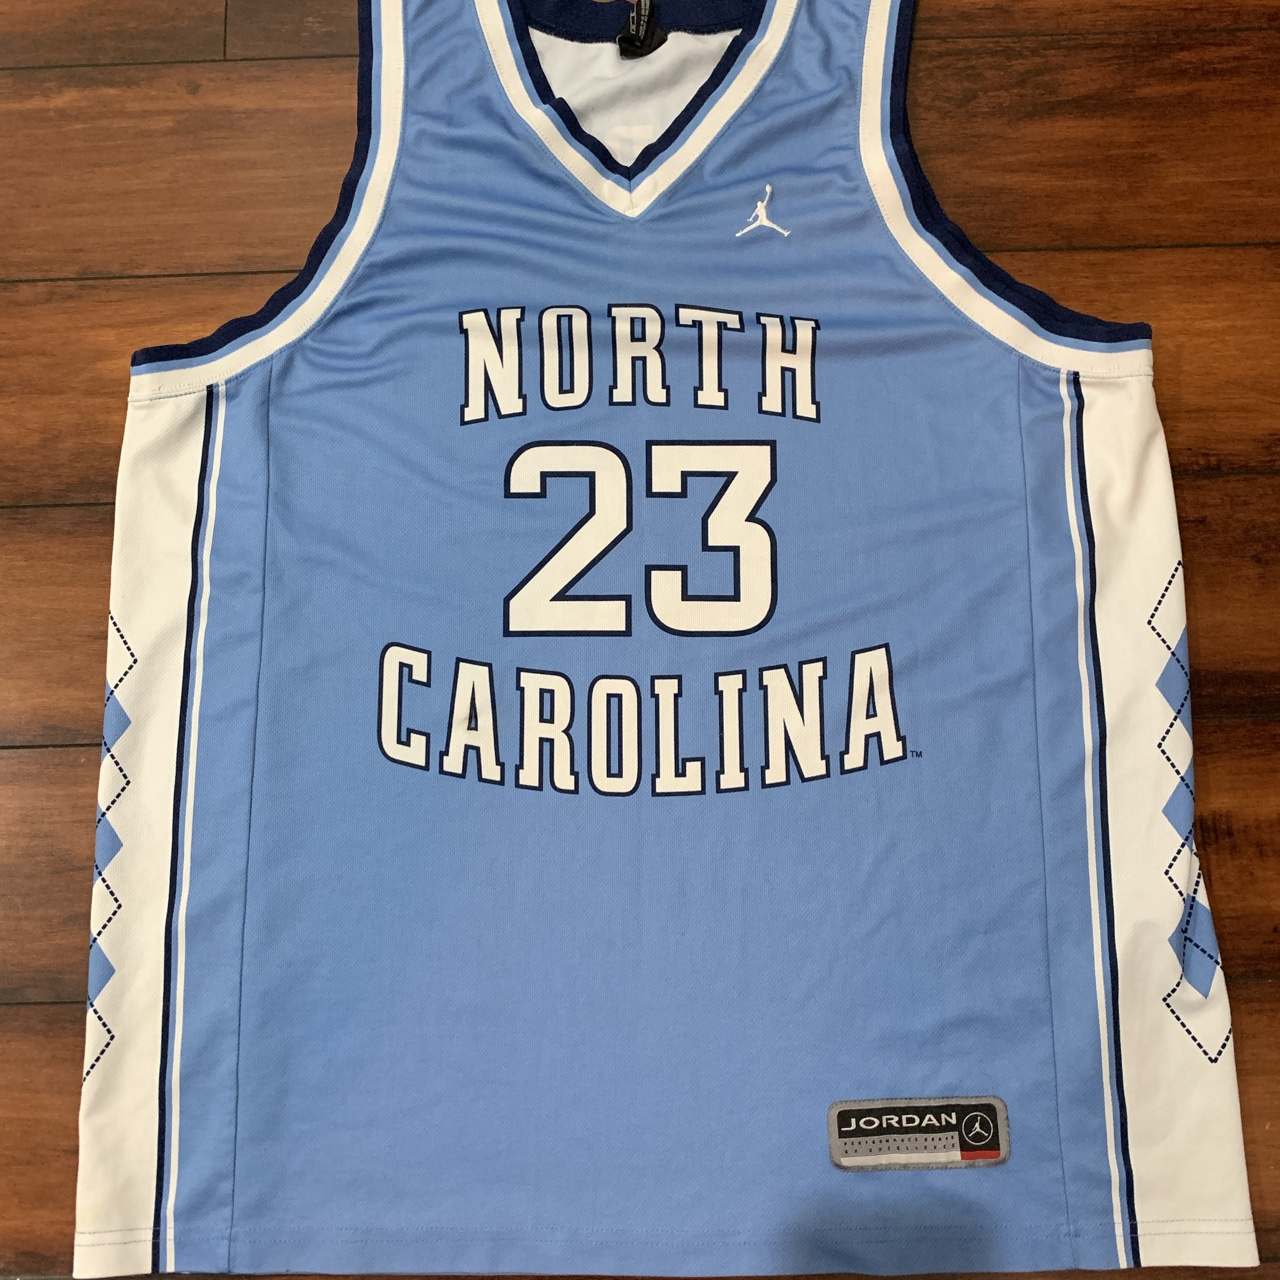 super popular b4cbd 7742c VINTAGE EARLY 2000'S UNC MICHAEL JORDAN... - Depop